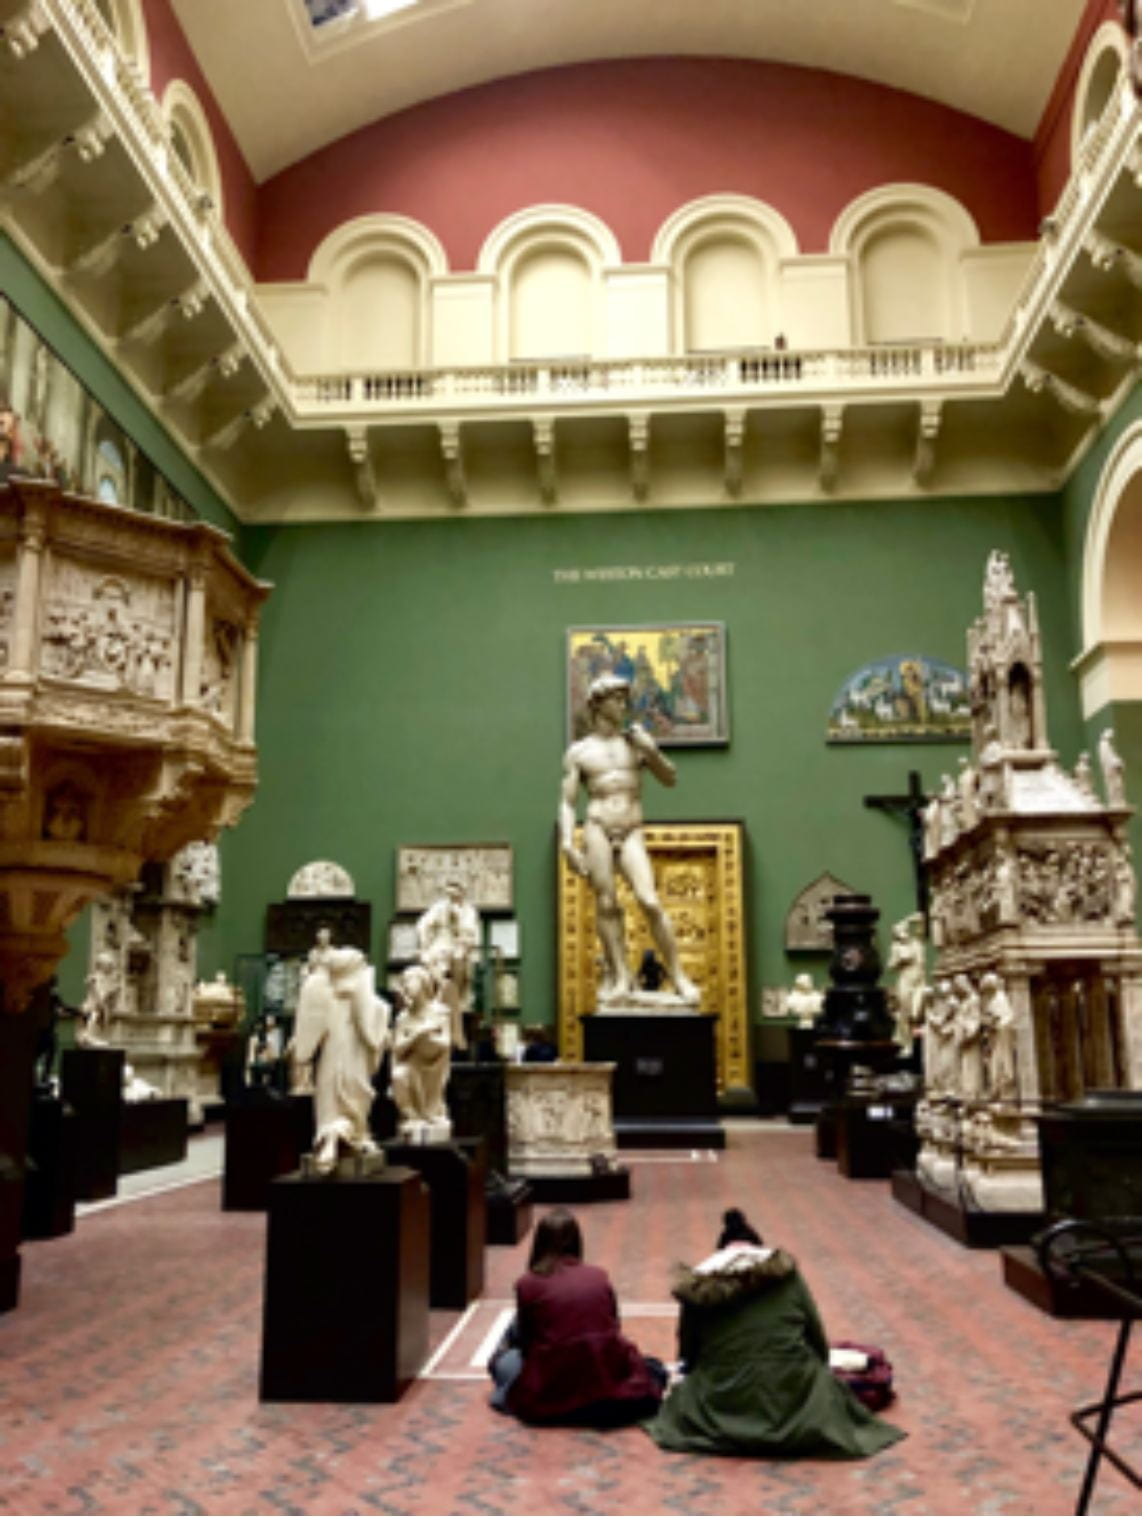 Alt Text: Two young women sitting crossed legged on the floor of museum gallery full of plaster casts of classical, medieval, and renaissance sculpture. They are sketching the plaster cast of Michelangelo's David.